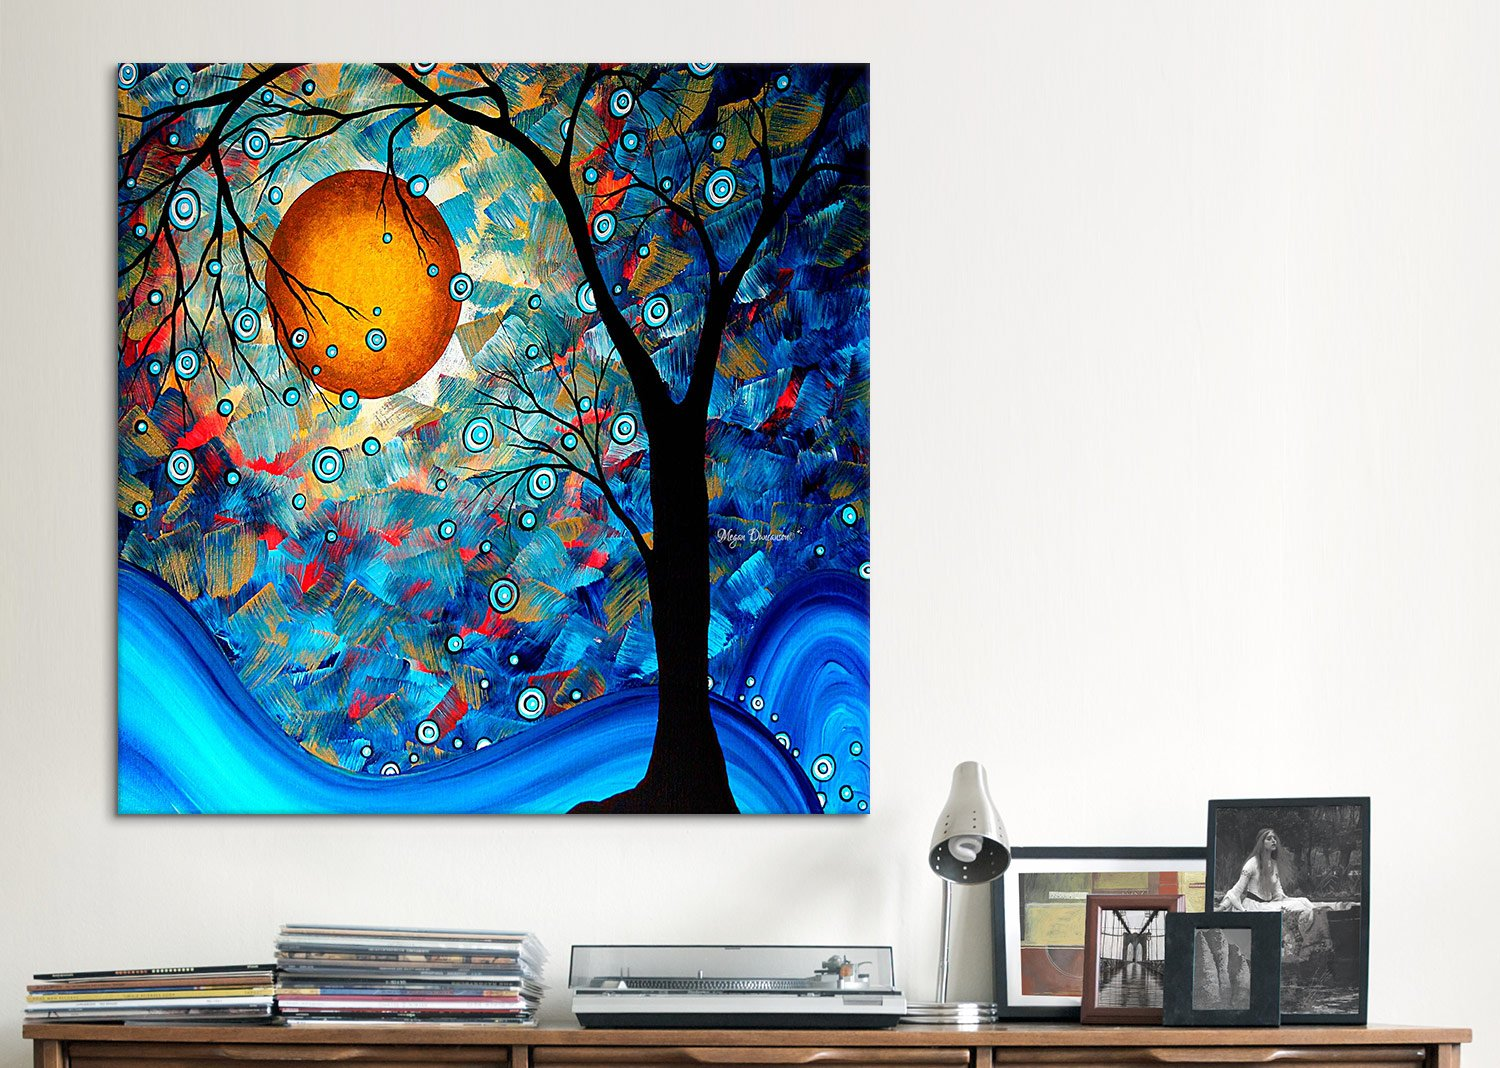 iCanvasART MDN53 Blue Essence by Megan Duncanson Canvas Print 18 by 18-Inch 0.75-Inch Deep